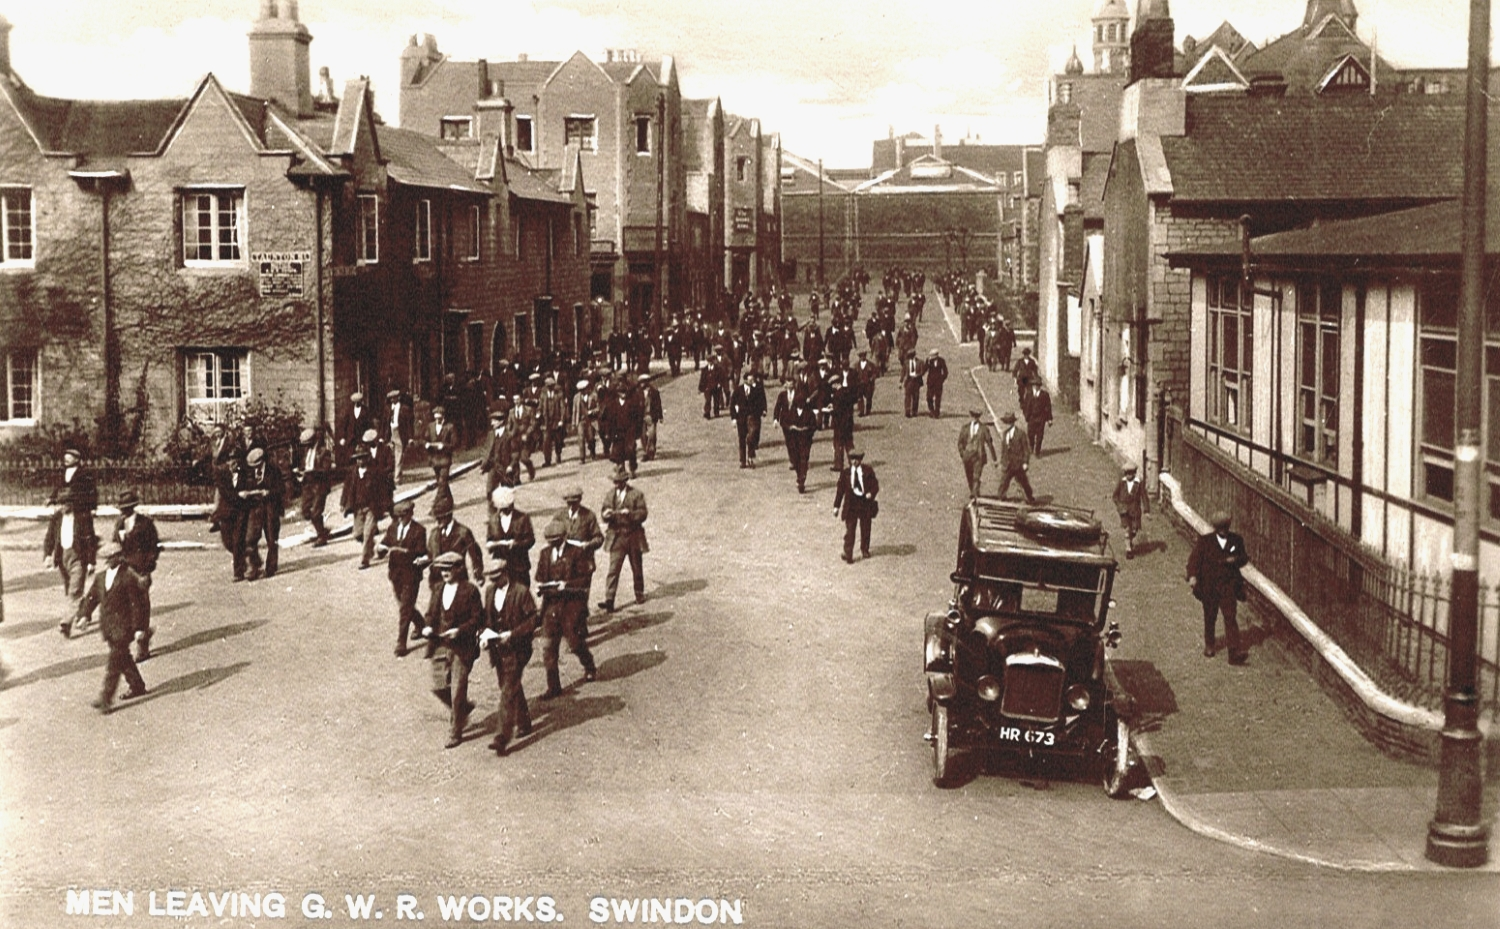 Men Leaving Works Emlyn Square - Provided by Swindon Local Studies https://www.flickr.com/photos/swindonlocal